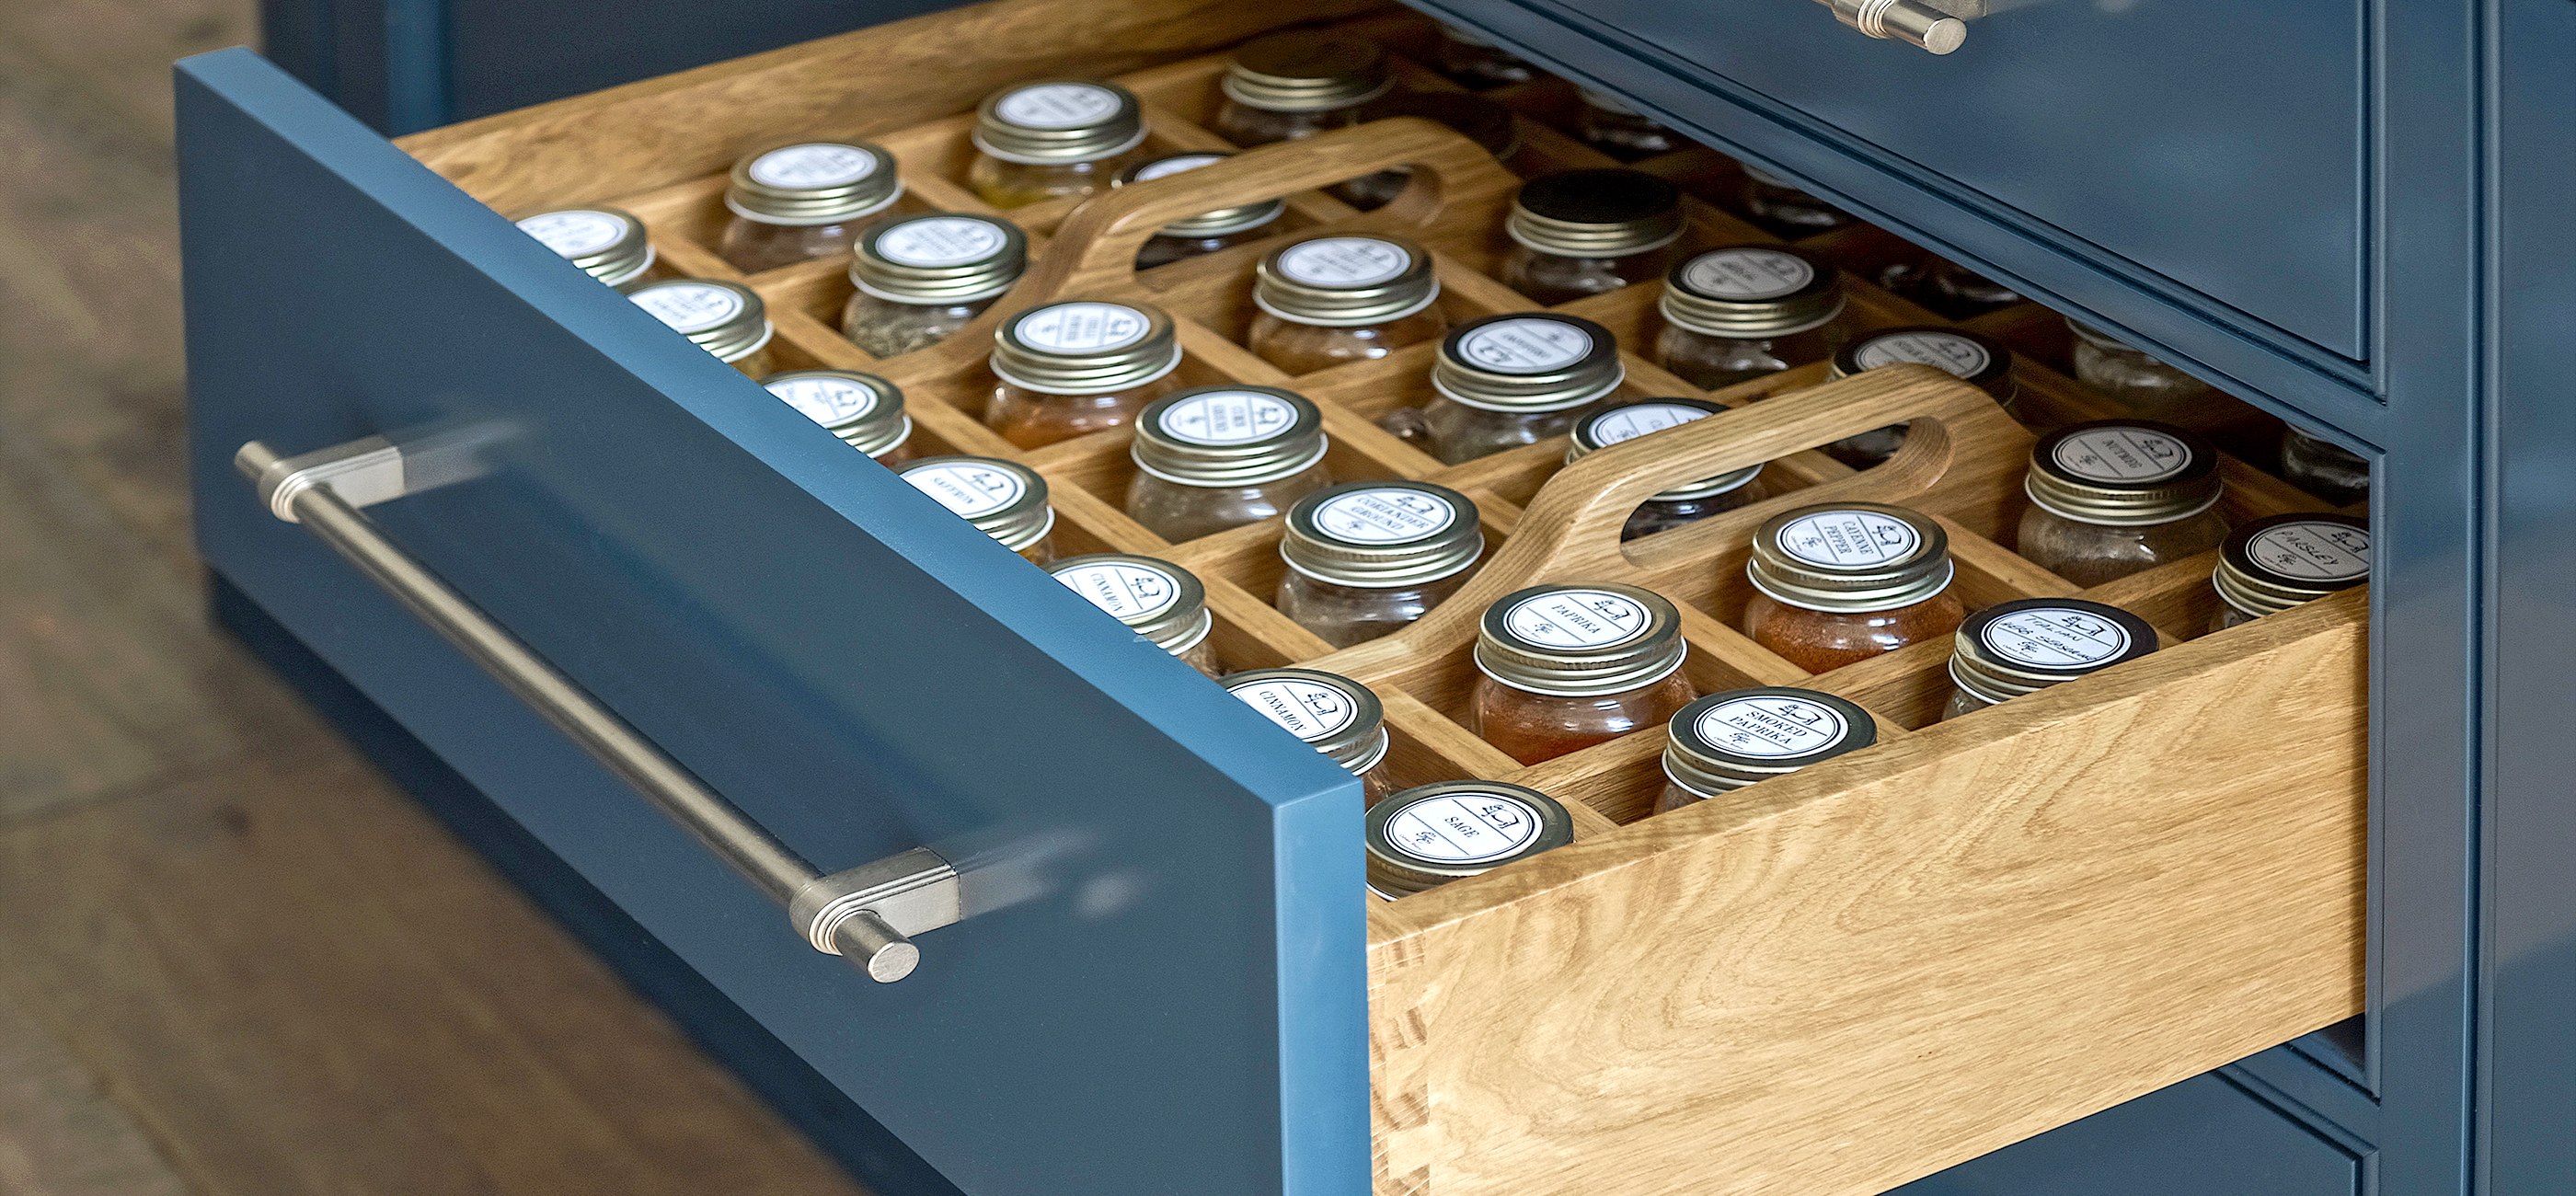 Close up of a bespoke Georgian drawer painted blue with spice compartments and solid oak interiors.